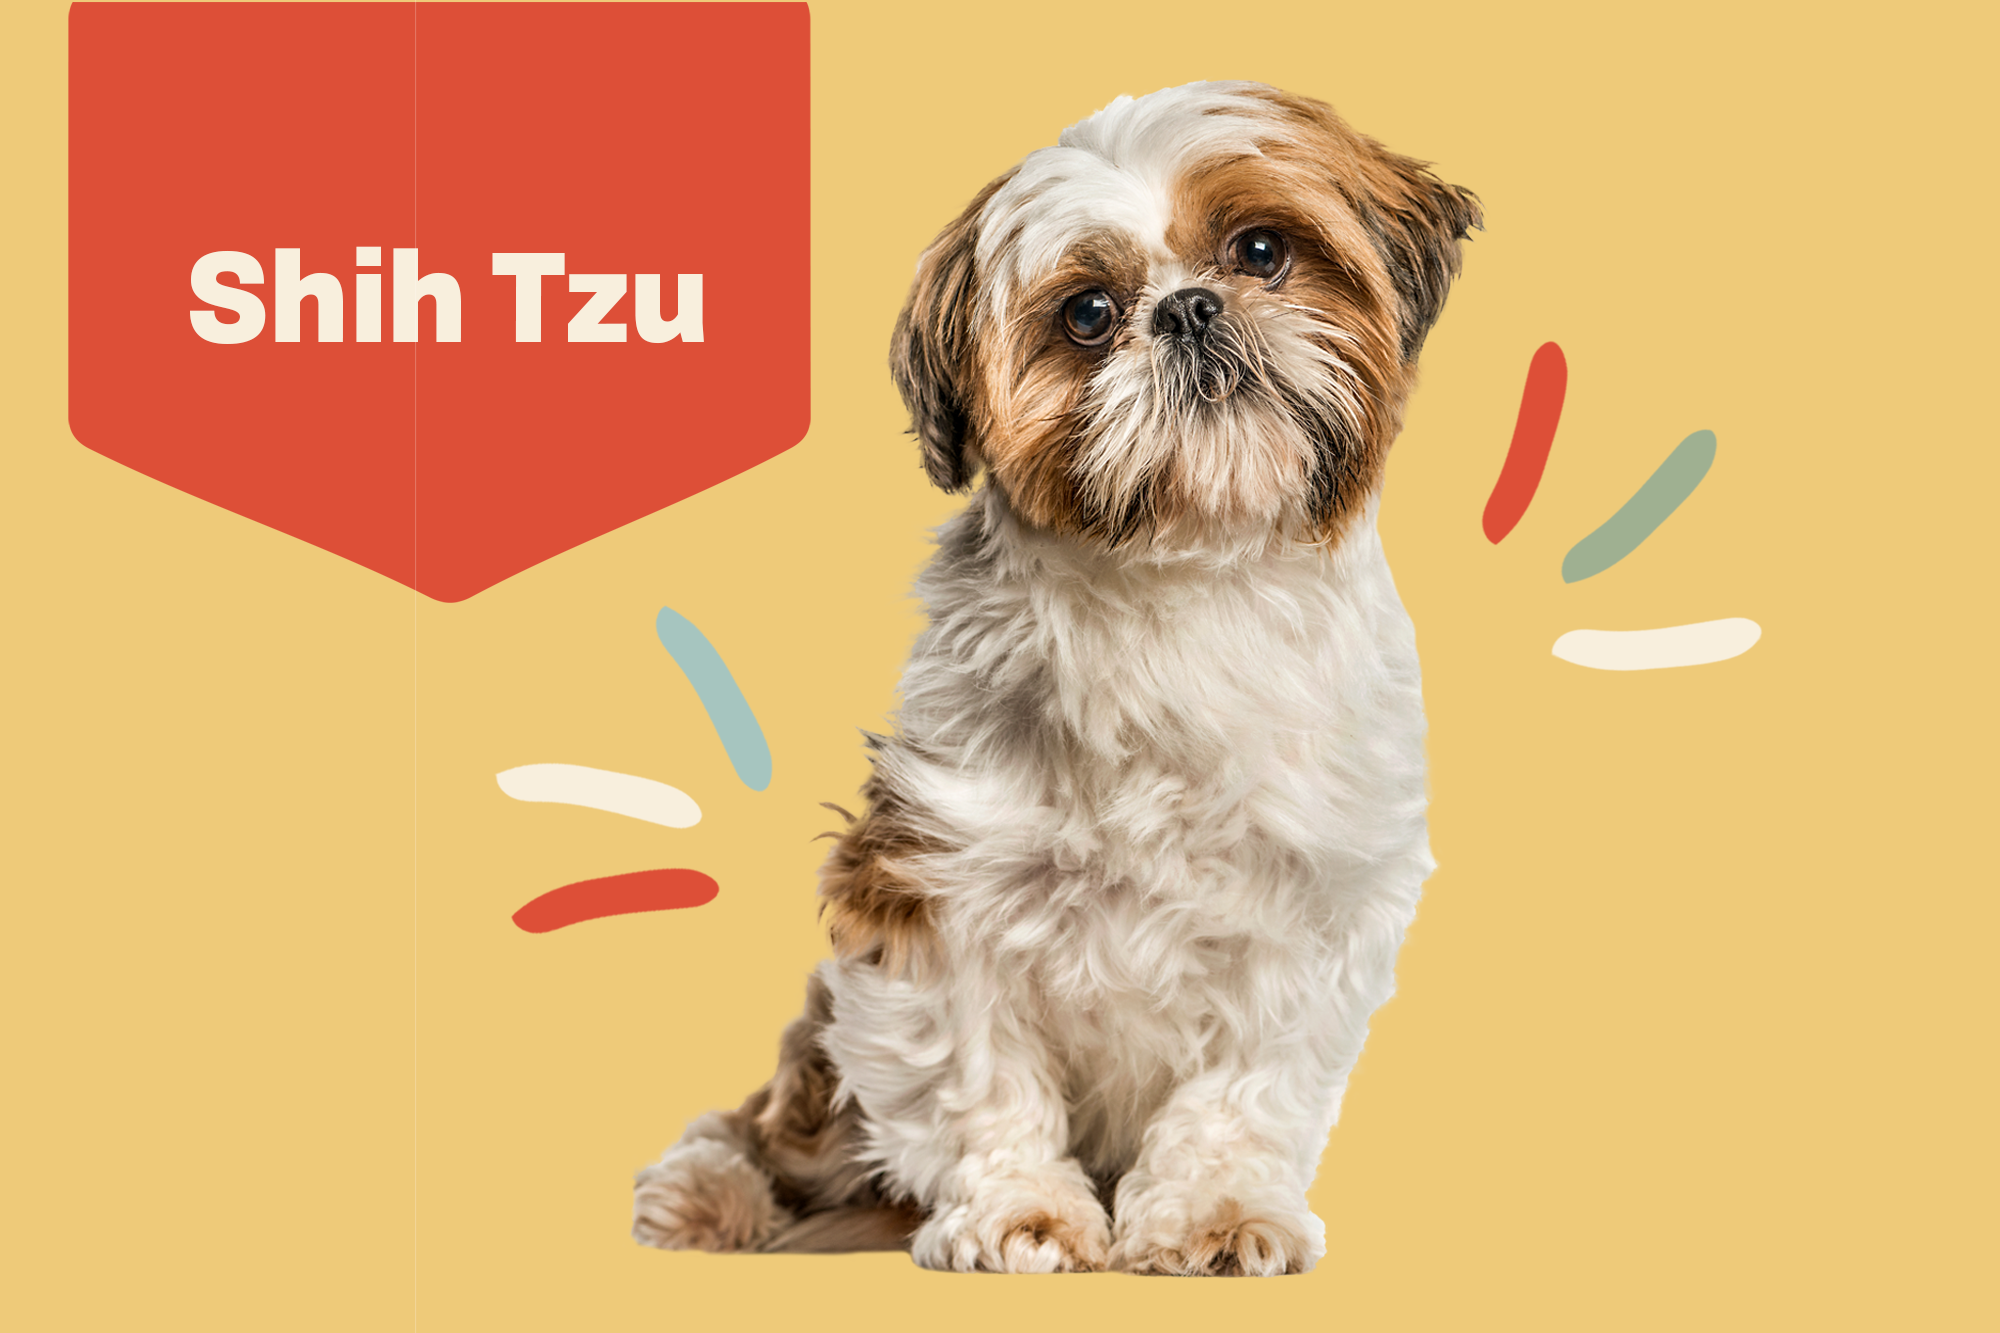 Shih Tzu Dog Breed Information Characteristics Daily Paws